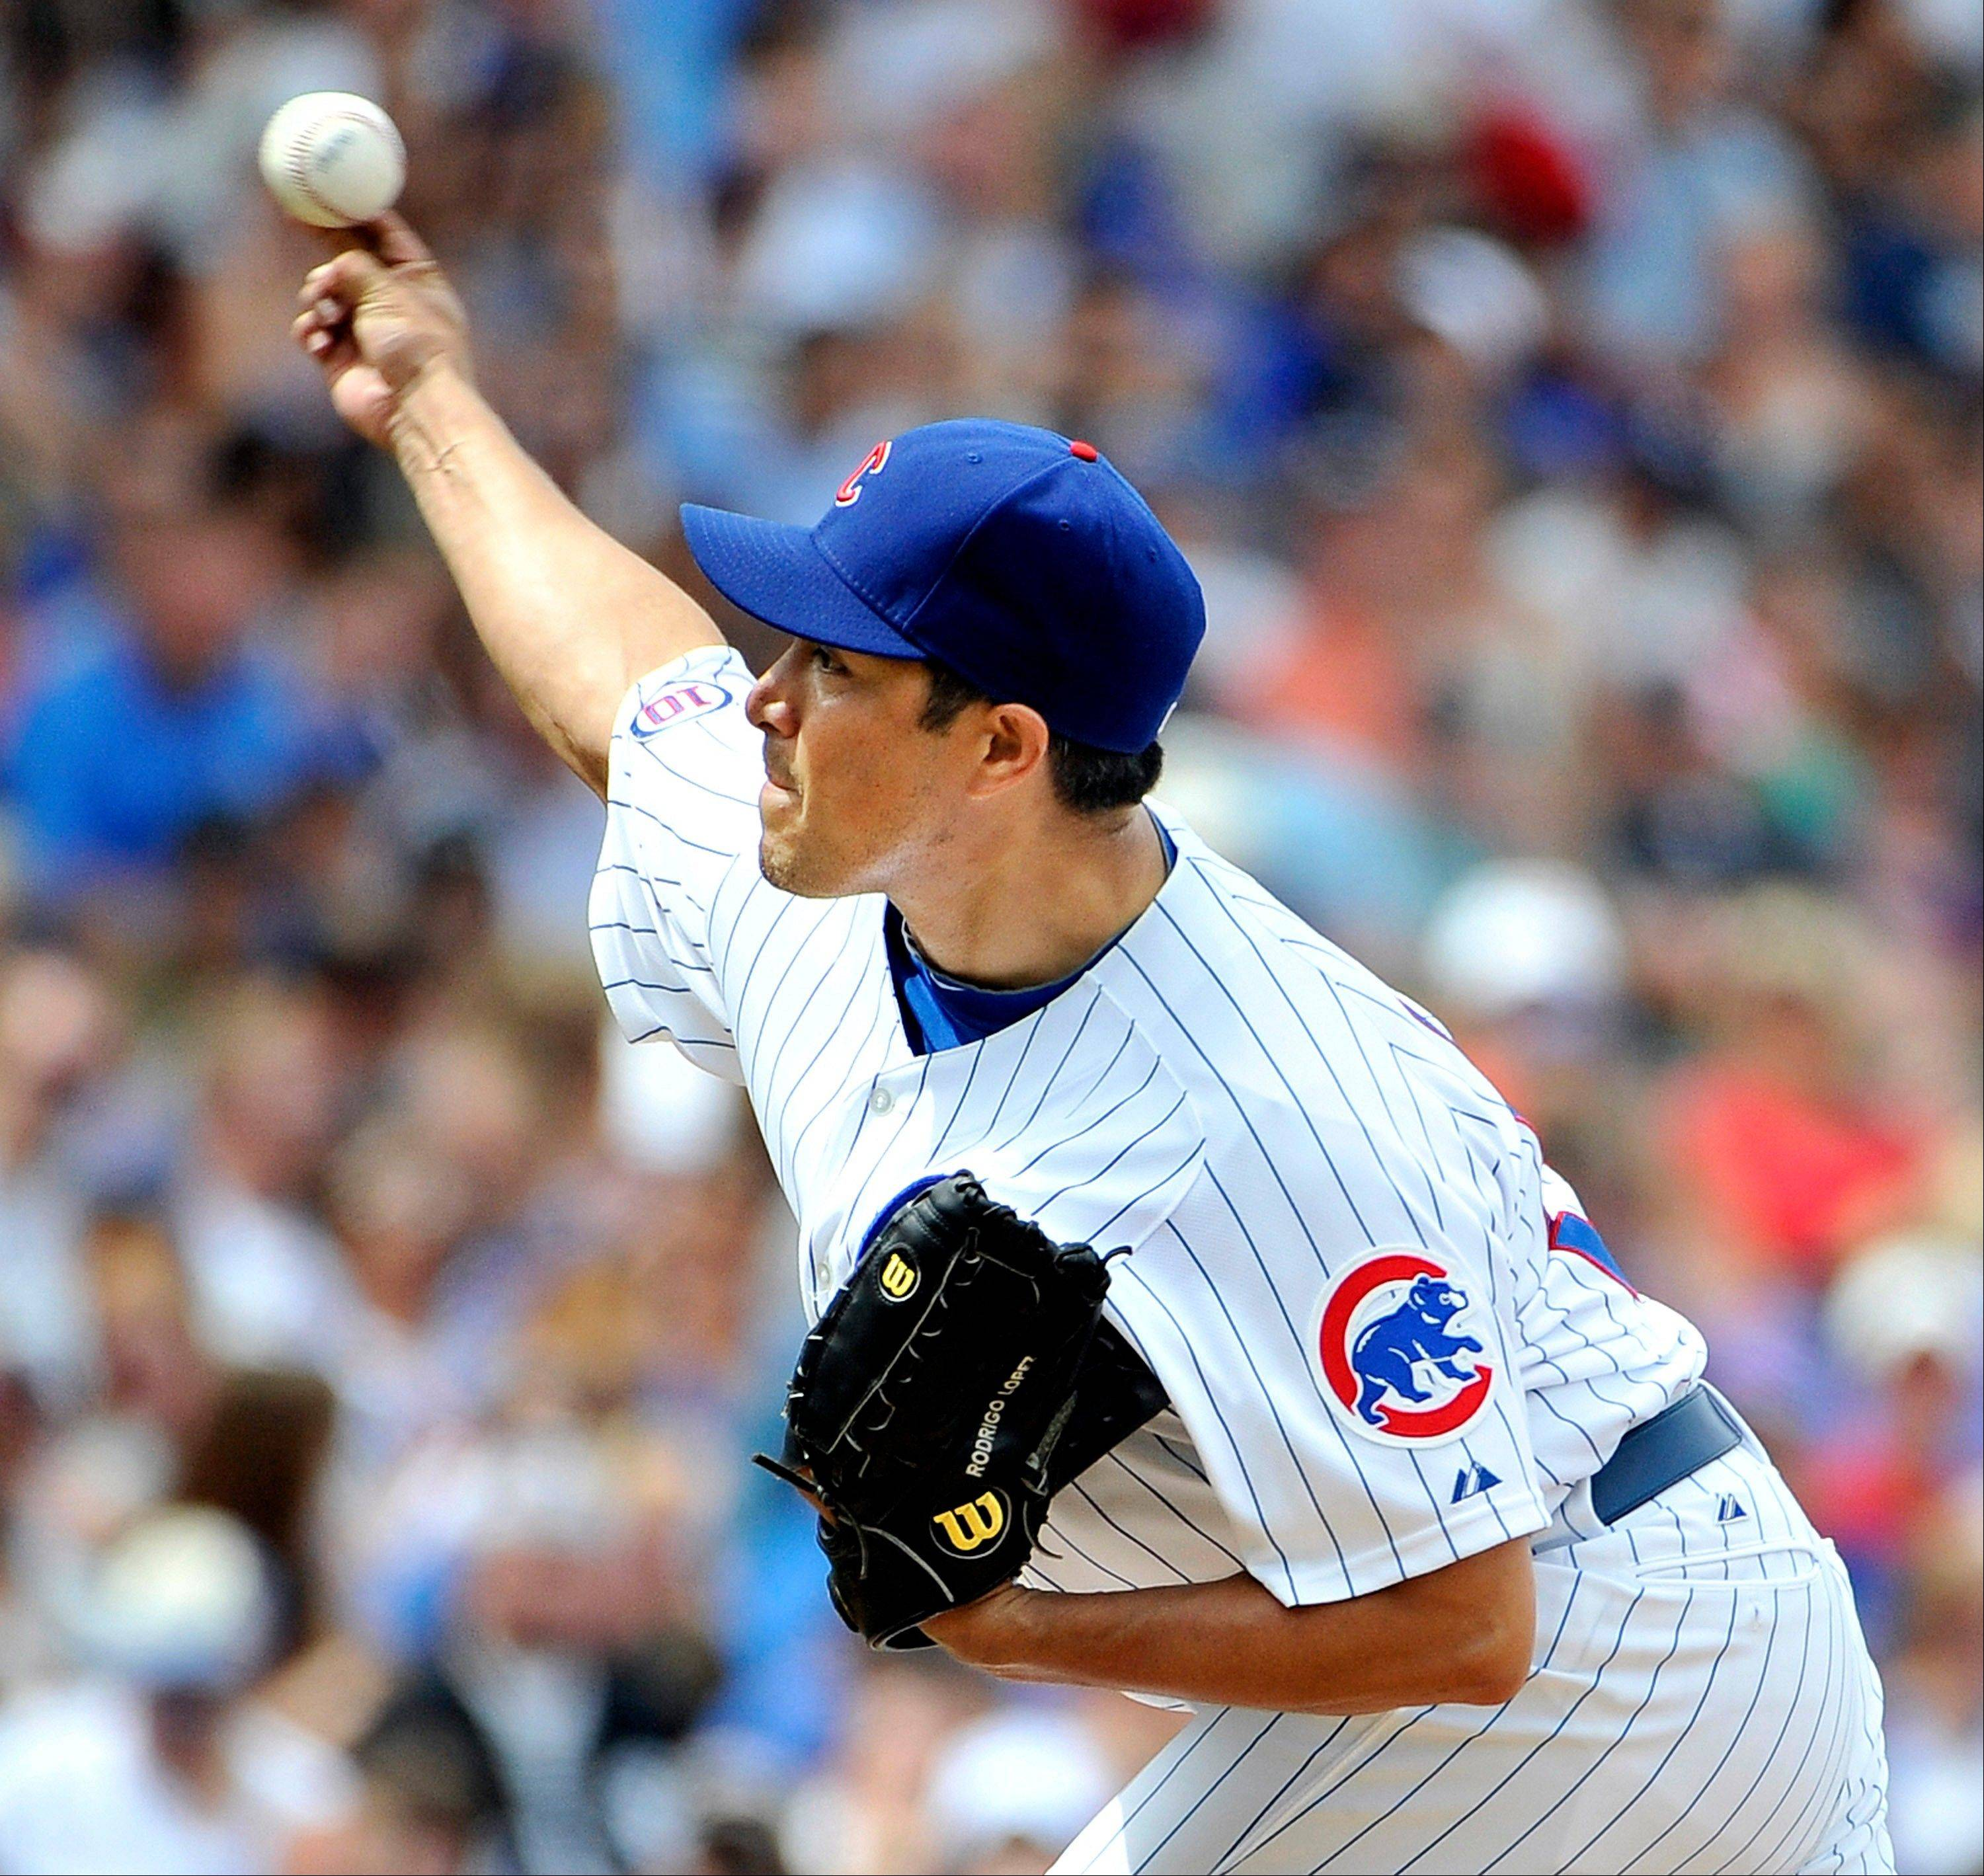 Cubs starter Rodrigo Lopez allowed only 2 hits over 7 innings of work in Sunday's victory over the White Sox.